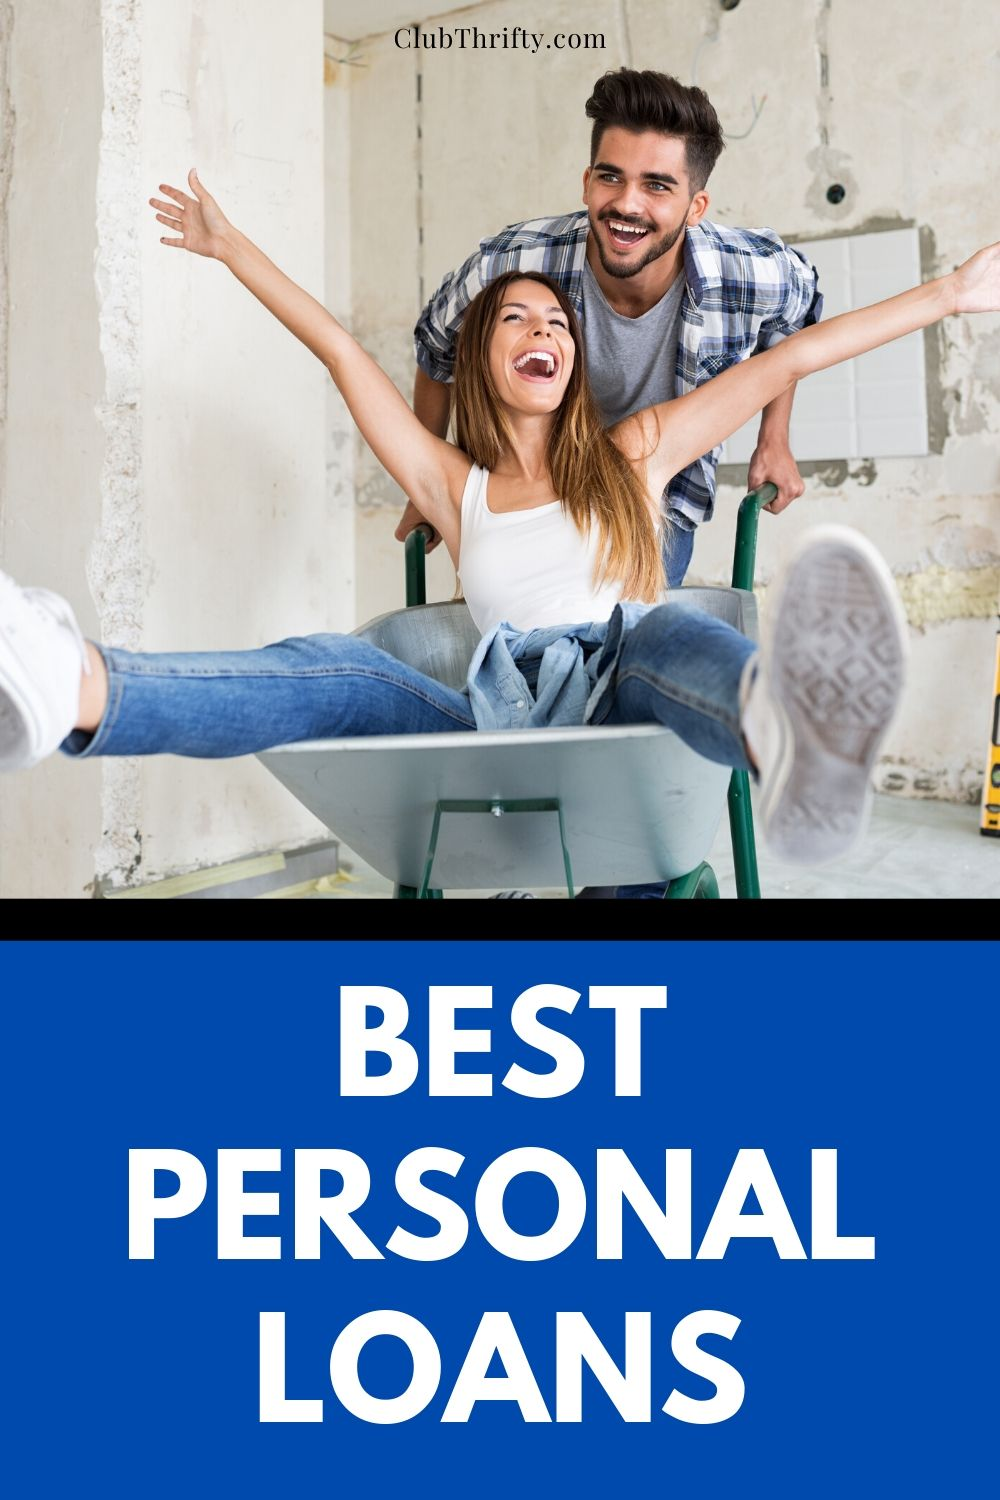 Best Personal Loans Pin - picture of man pushing woman in wheelbarrow in empty house